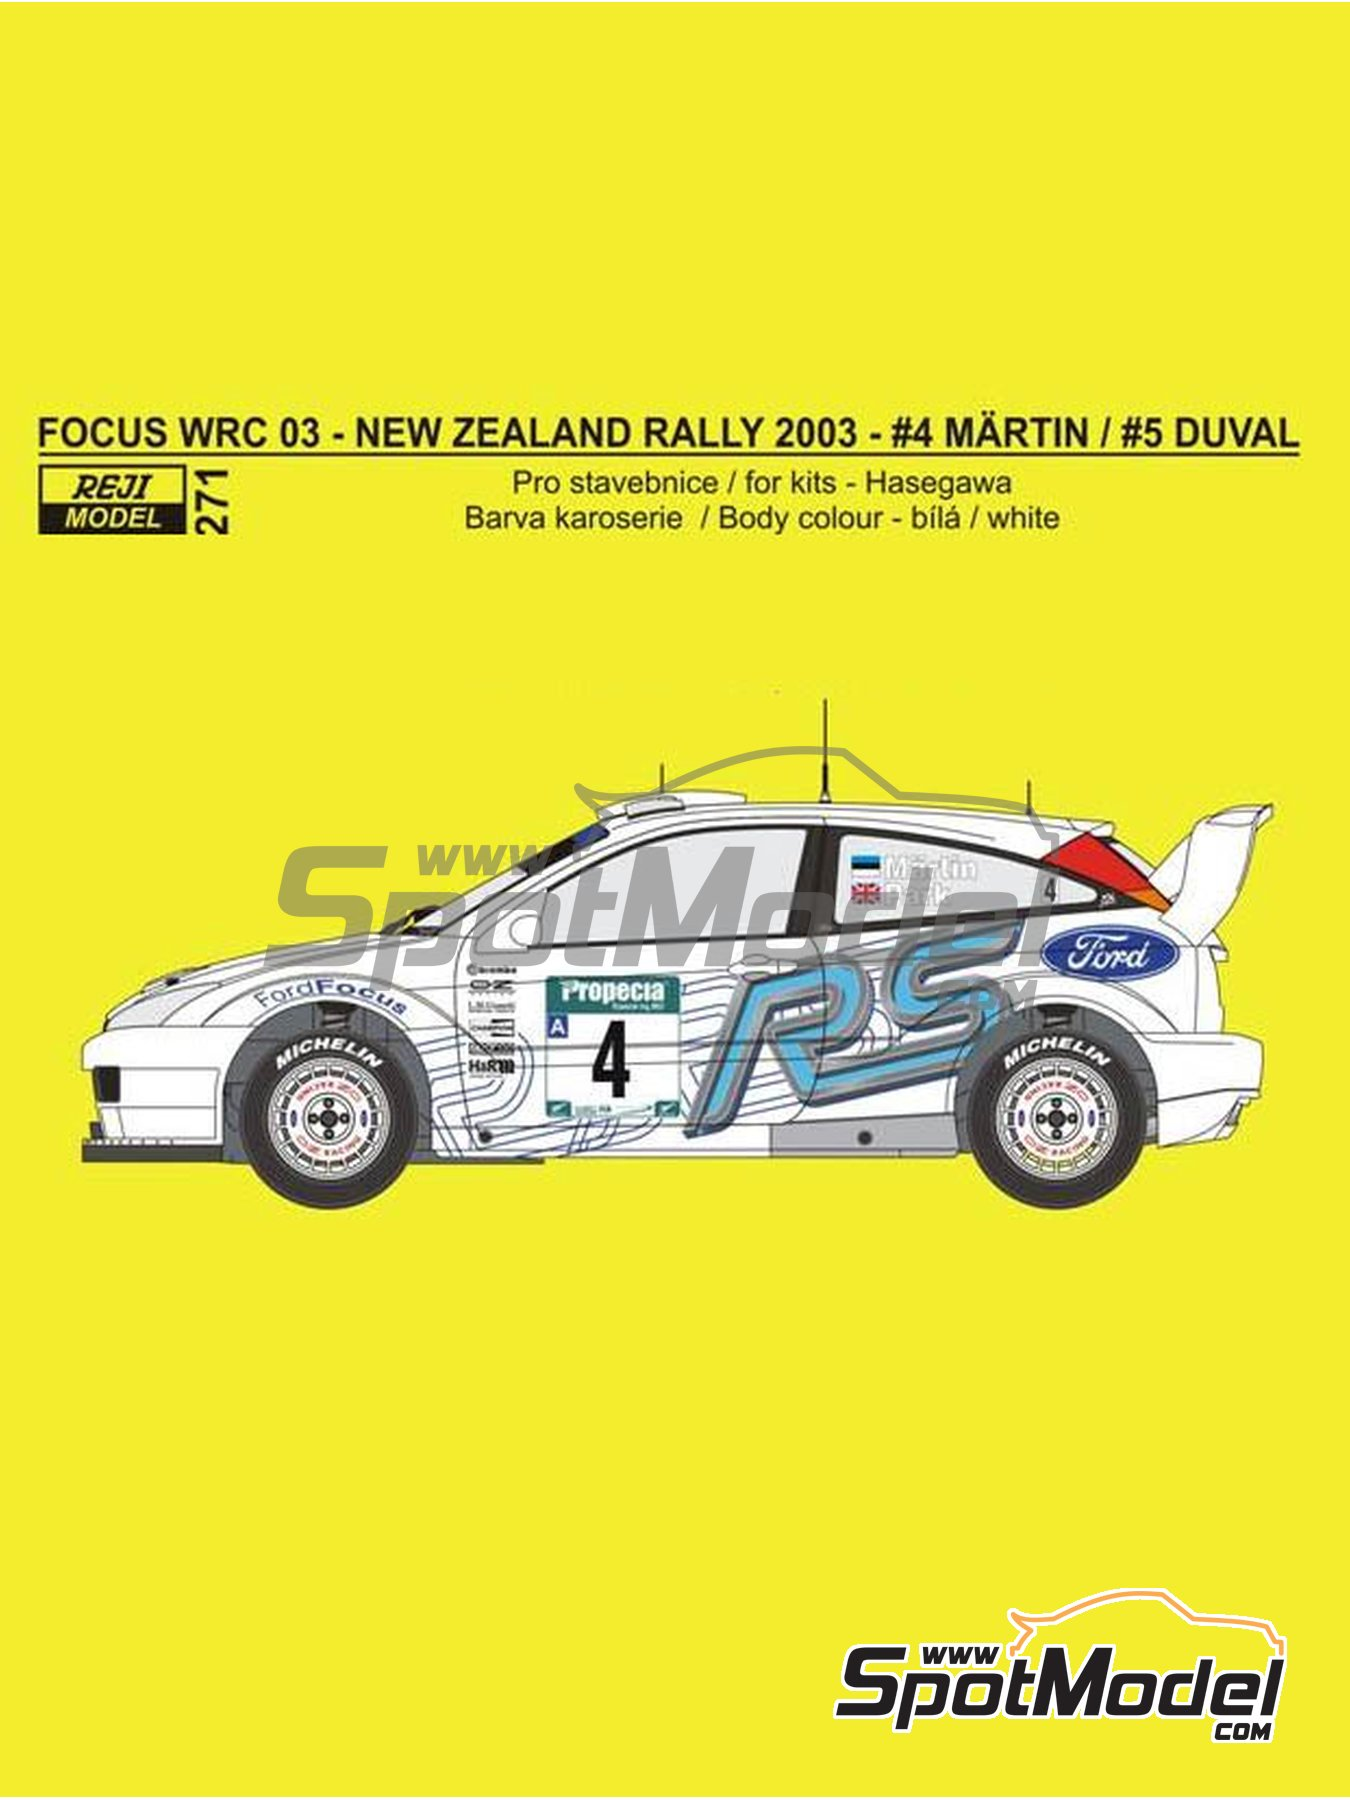 Ford Focus WRC - New Zealand rally 2003 | Marking / livery in 1/24 scale manufactured by Reji Model (ref. REJI-271) image